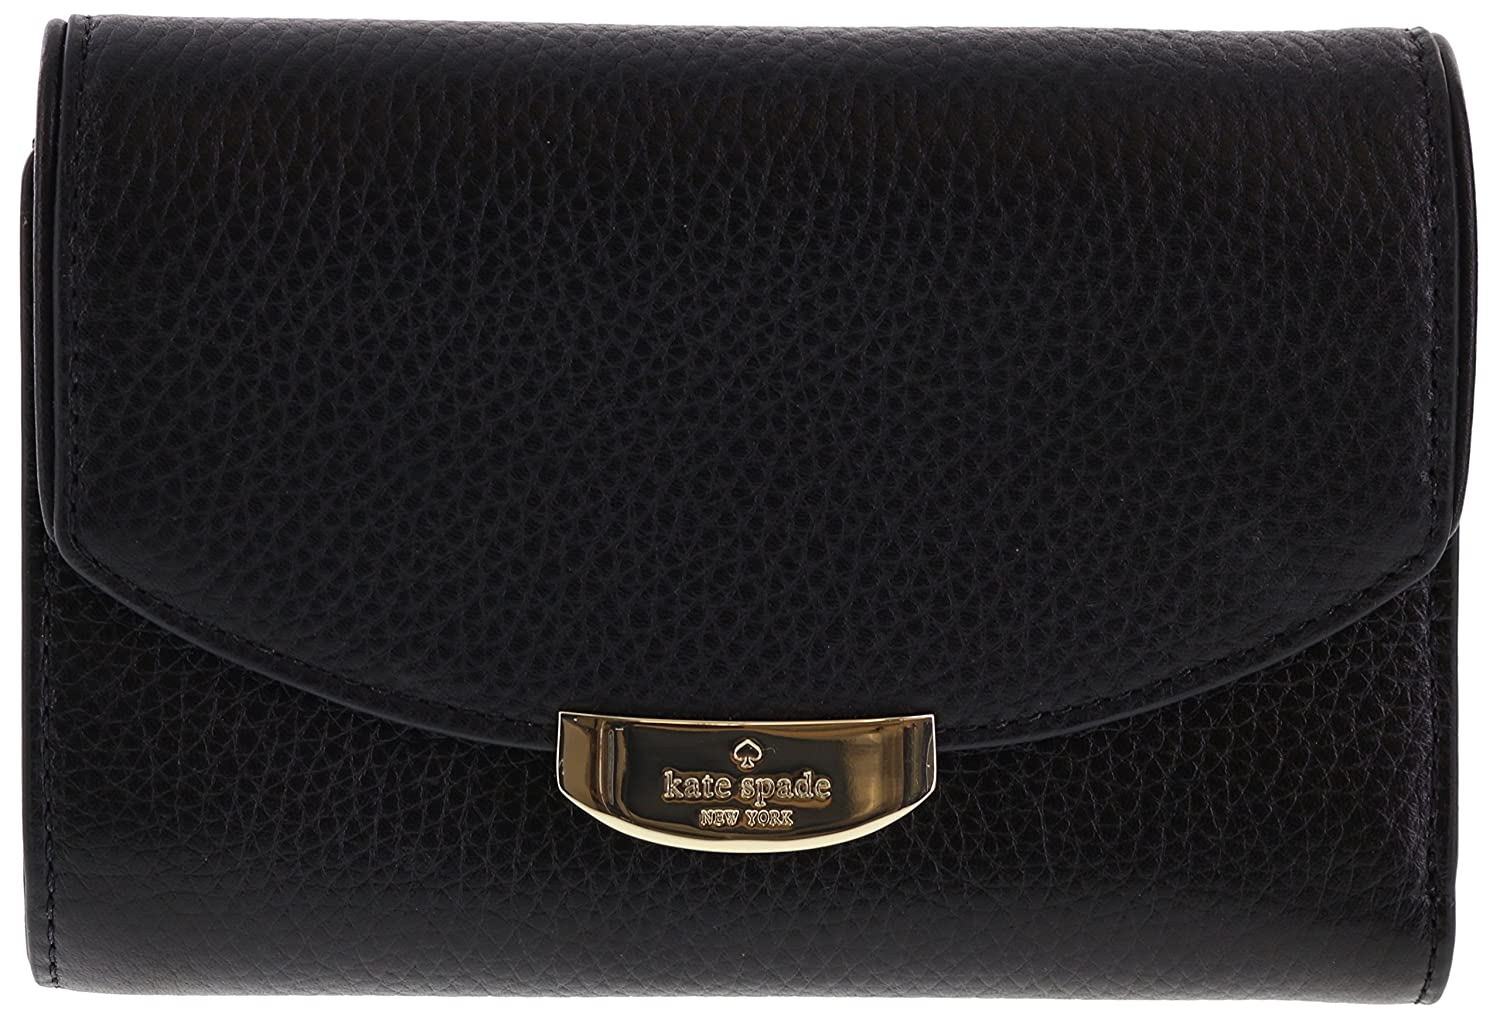 Kate Spade New York Mulberry Street Callie Pebbled Leather Wallet